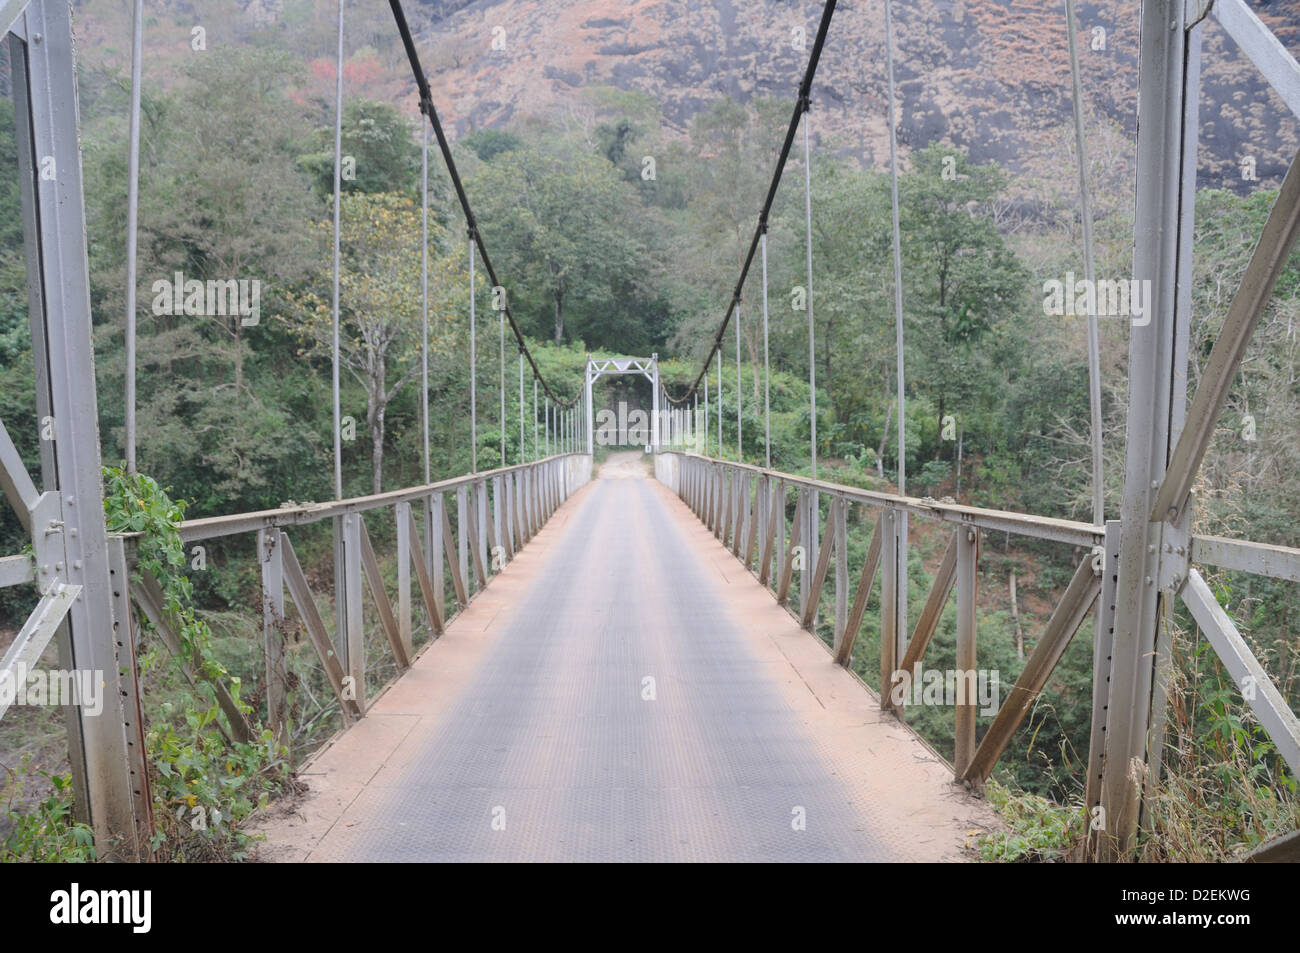 A Steel Fabricated bridge in the middle of the forest/tropical rain forest at Munnar. - Stock Image